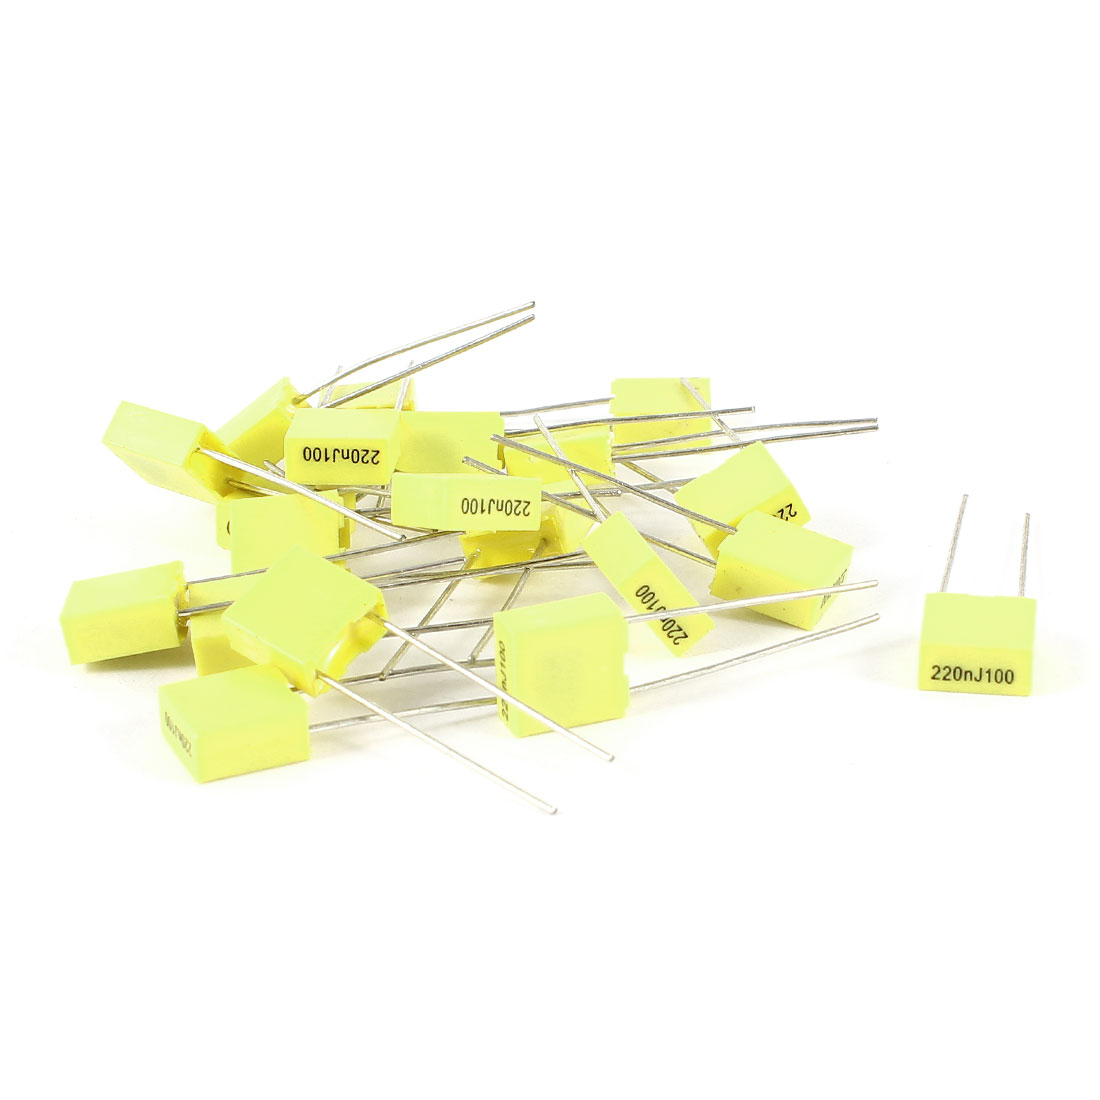 20 Pcs 100V 0.22uF 220NF Radial Lead Box Type Film Correction Capacitors